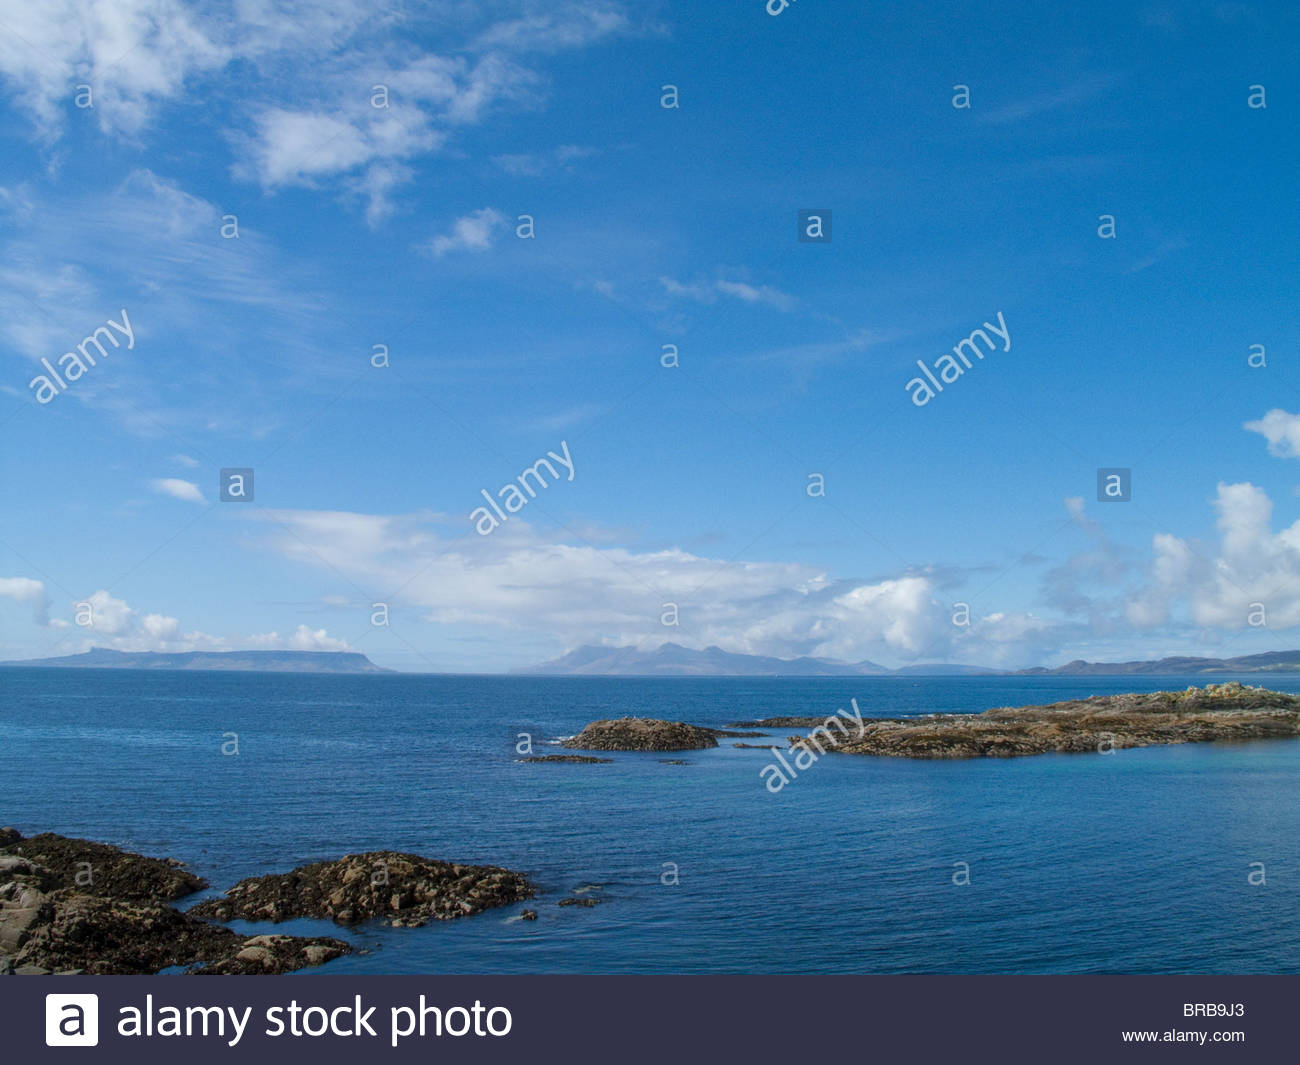 Blue sky over tranquil ocean with rocks protruding - Stock Image